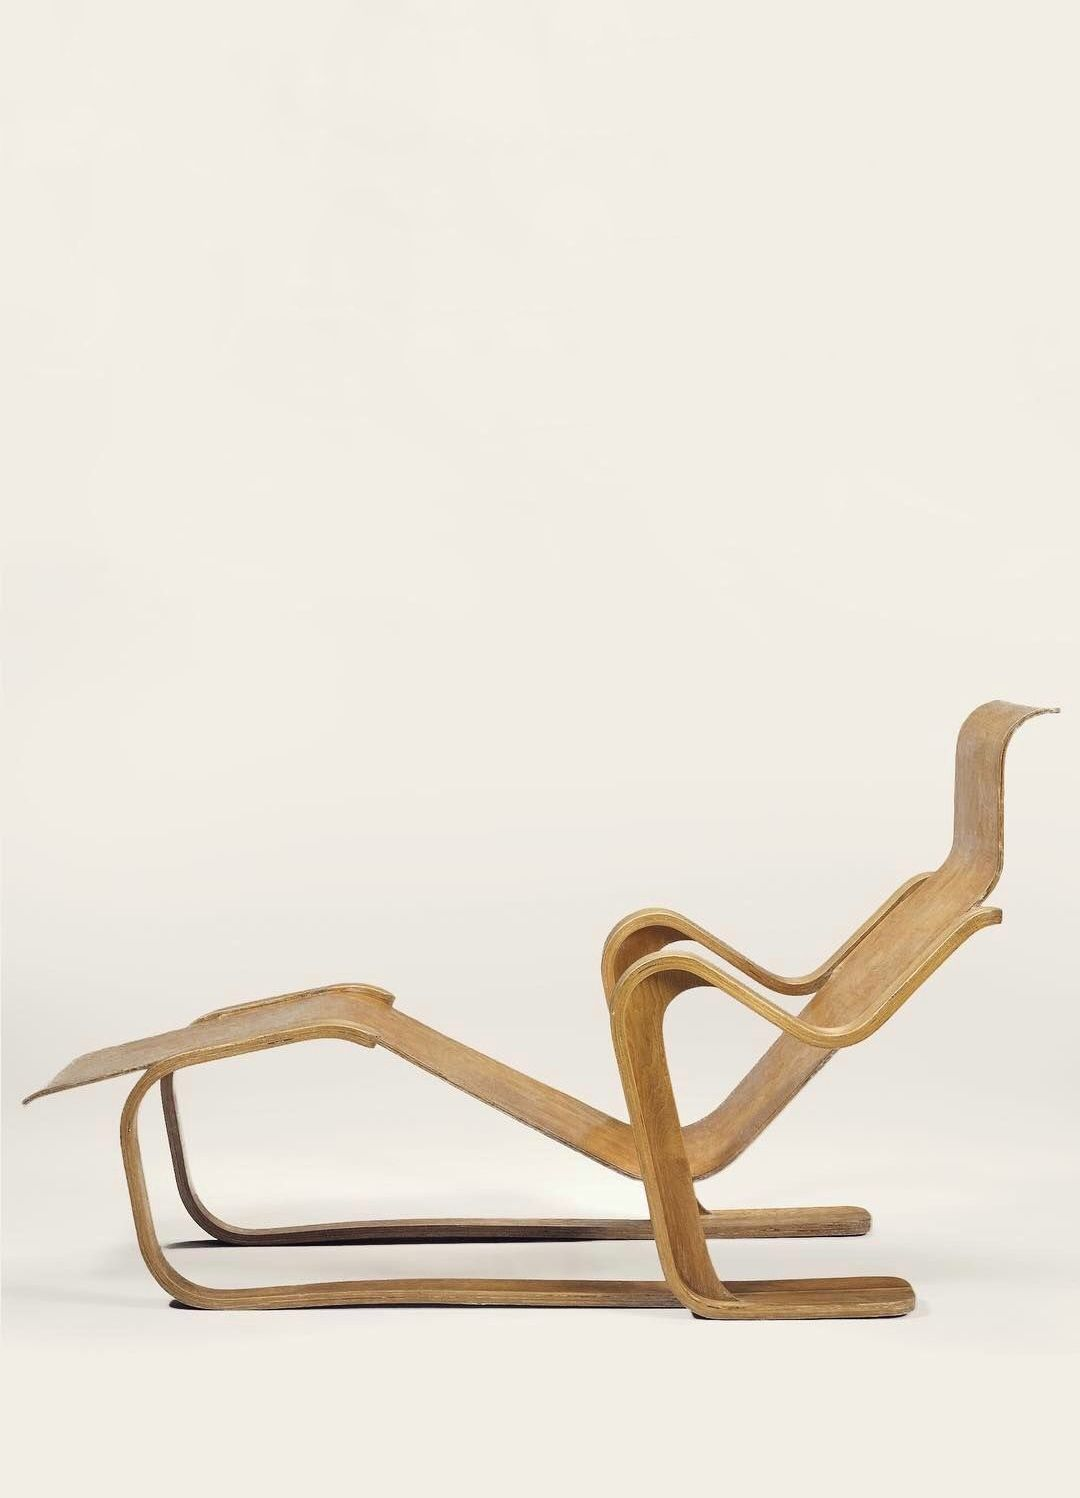 Charmant MARCEL BREUER Lounge Chair, 1930s. Sold By Www